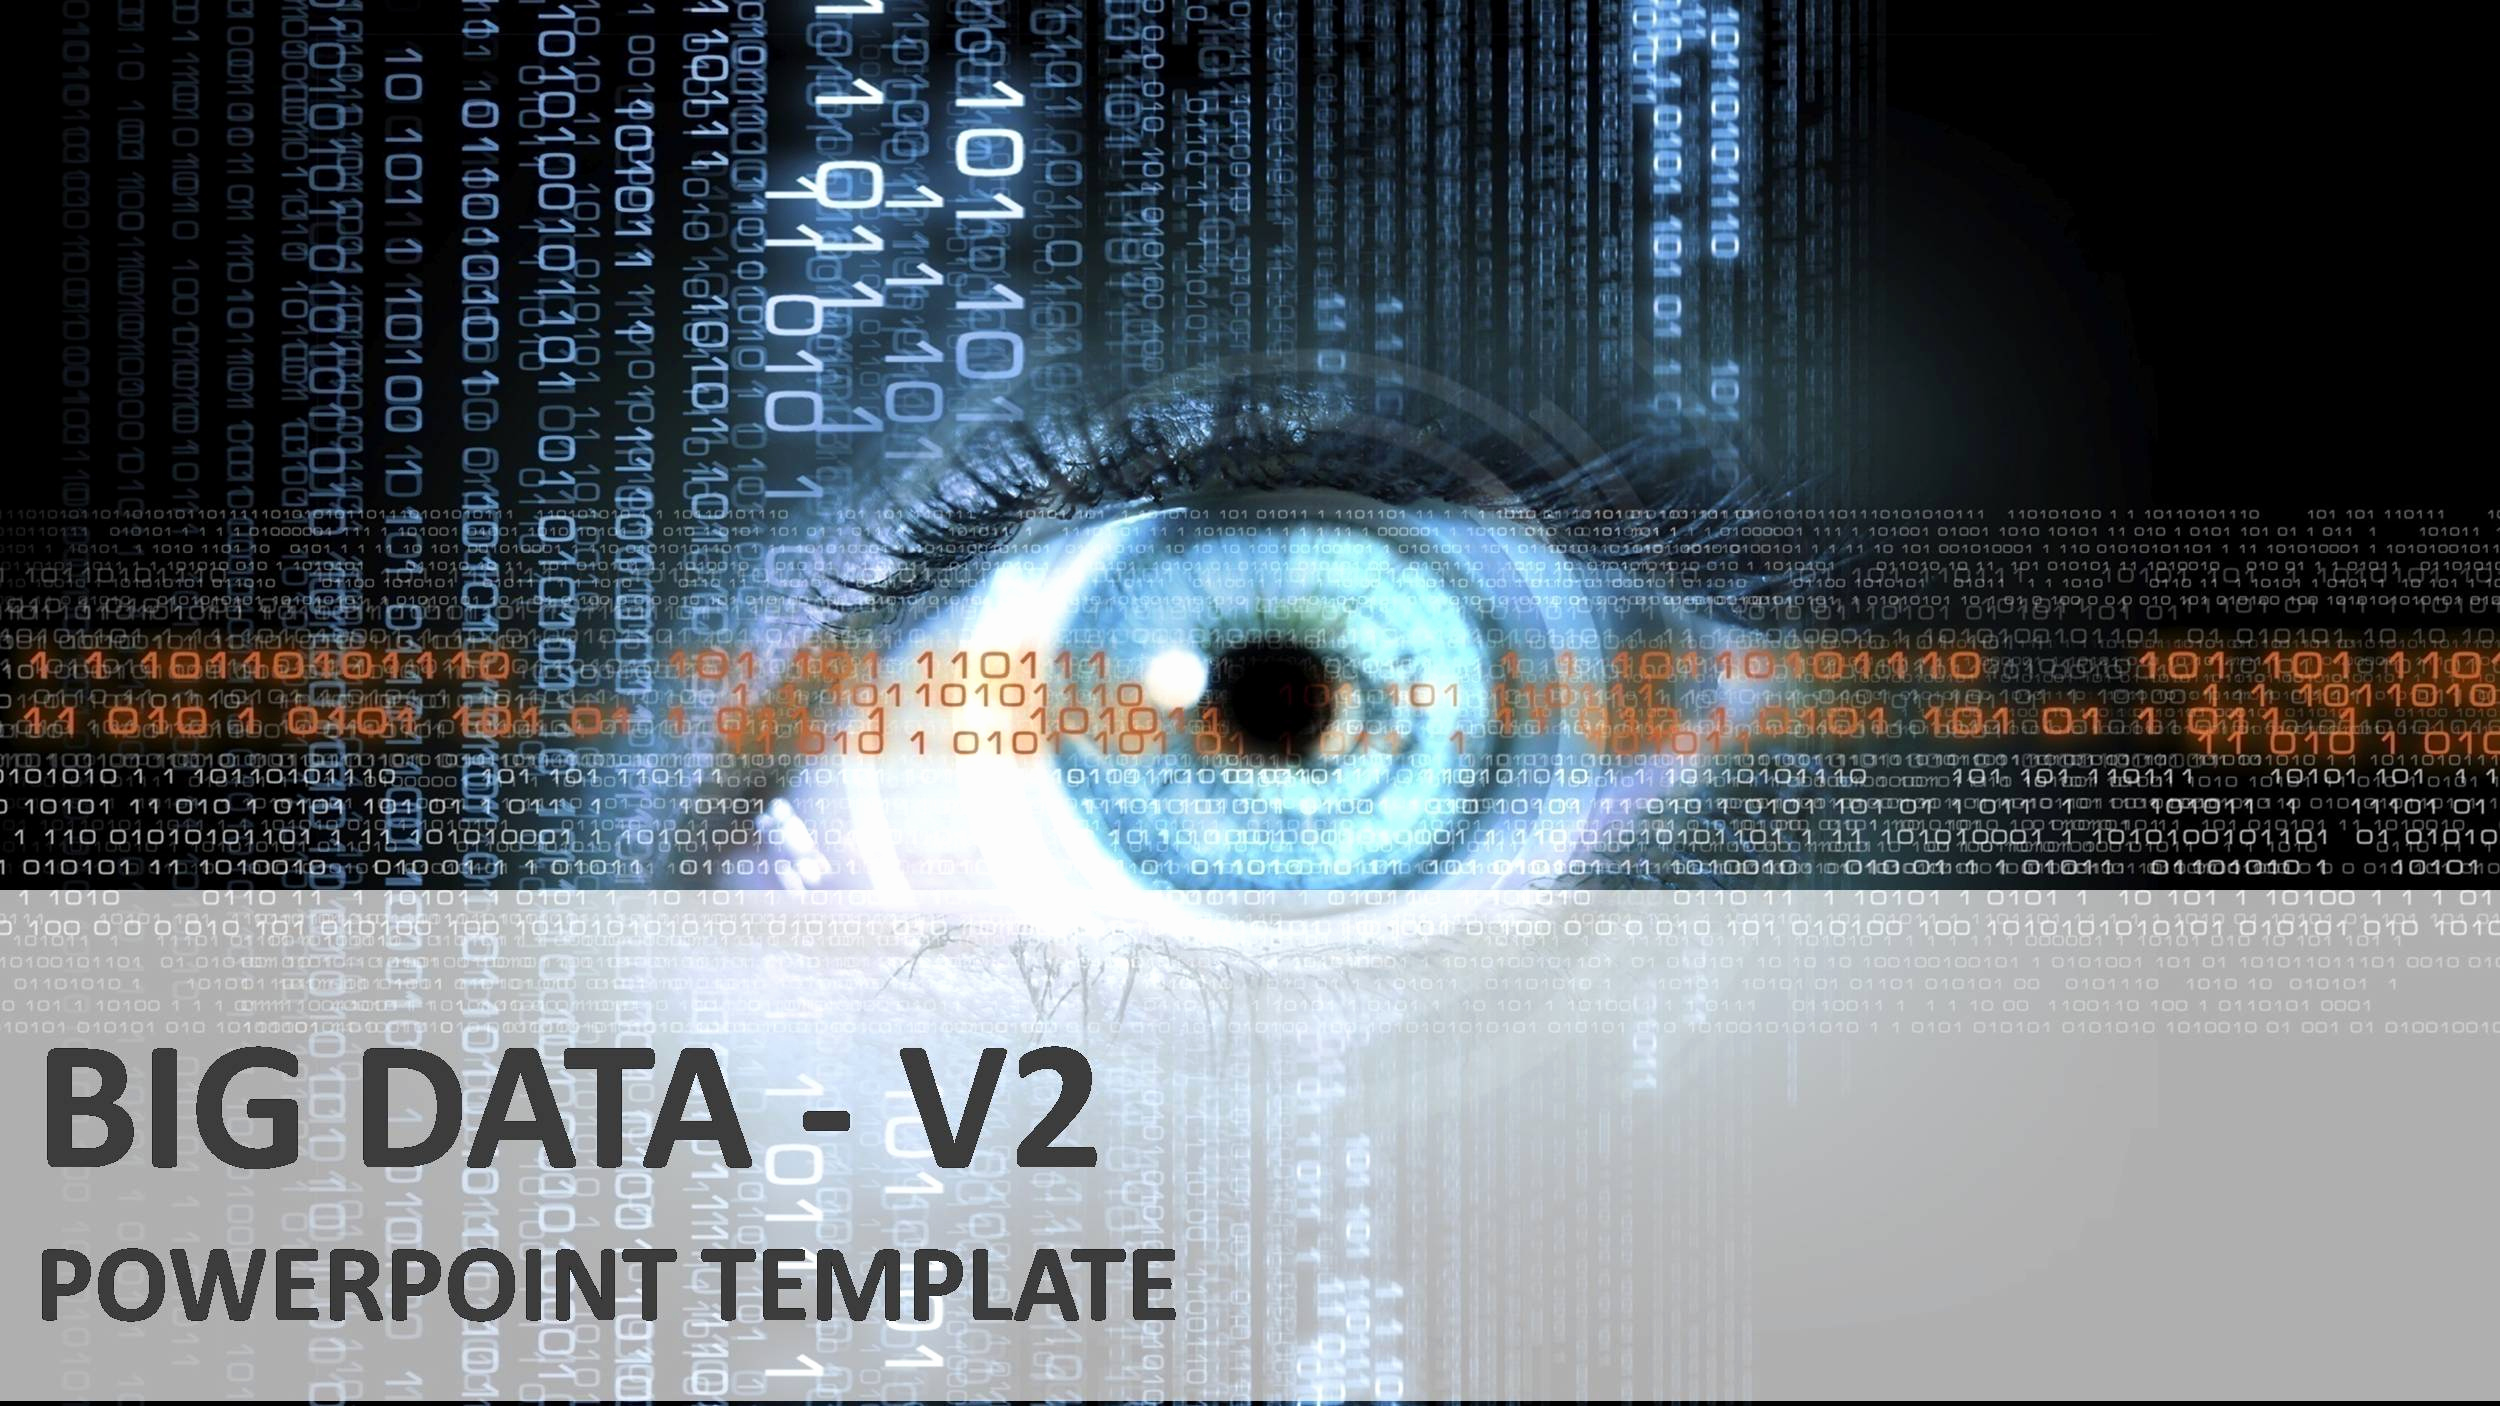 Data Powerpoint Template and Big Data V2 Powerpoint Presentation Template by Rainstudio